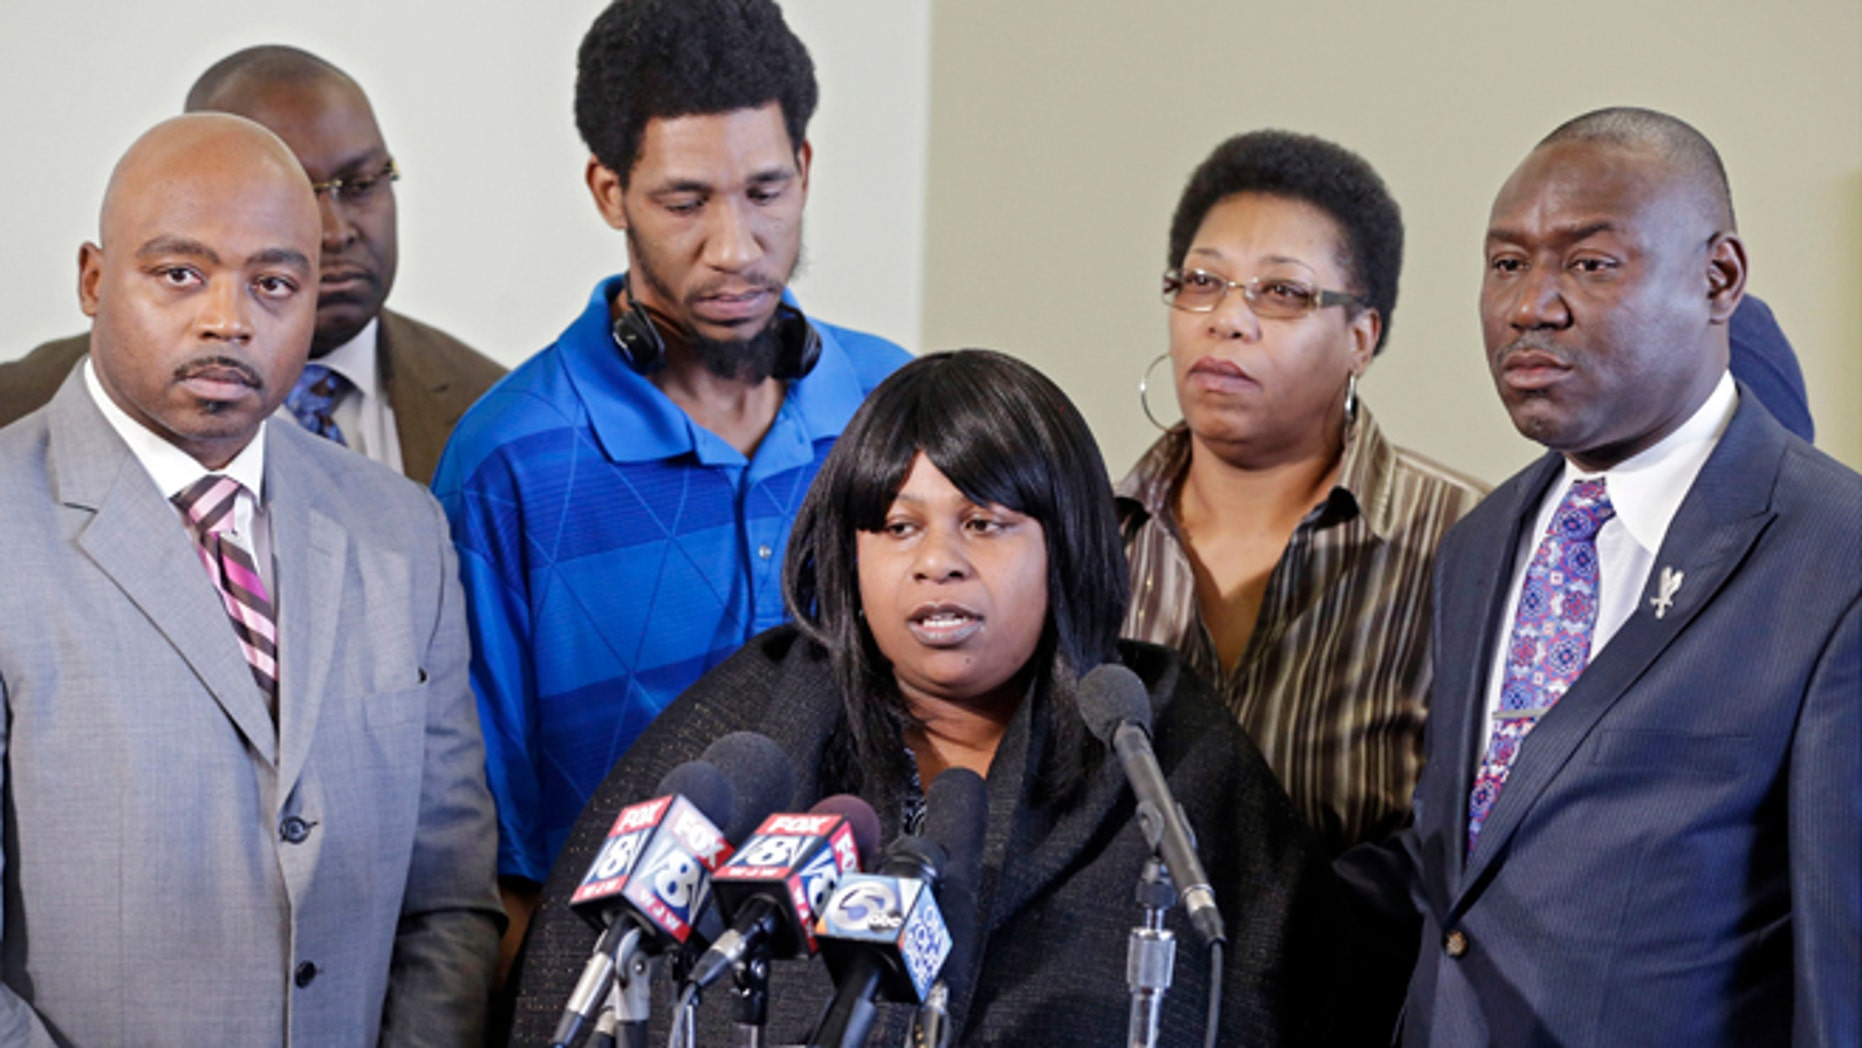 Jan. 6, 2015: Samaria Rice, center, speaks about the investigation into the death of her son Tamir Rice, at a news conference with attorneys Walter Madison, left, and Benjamin Crump in Cleveland.